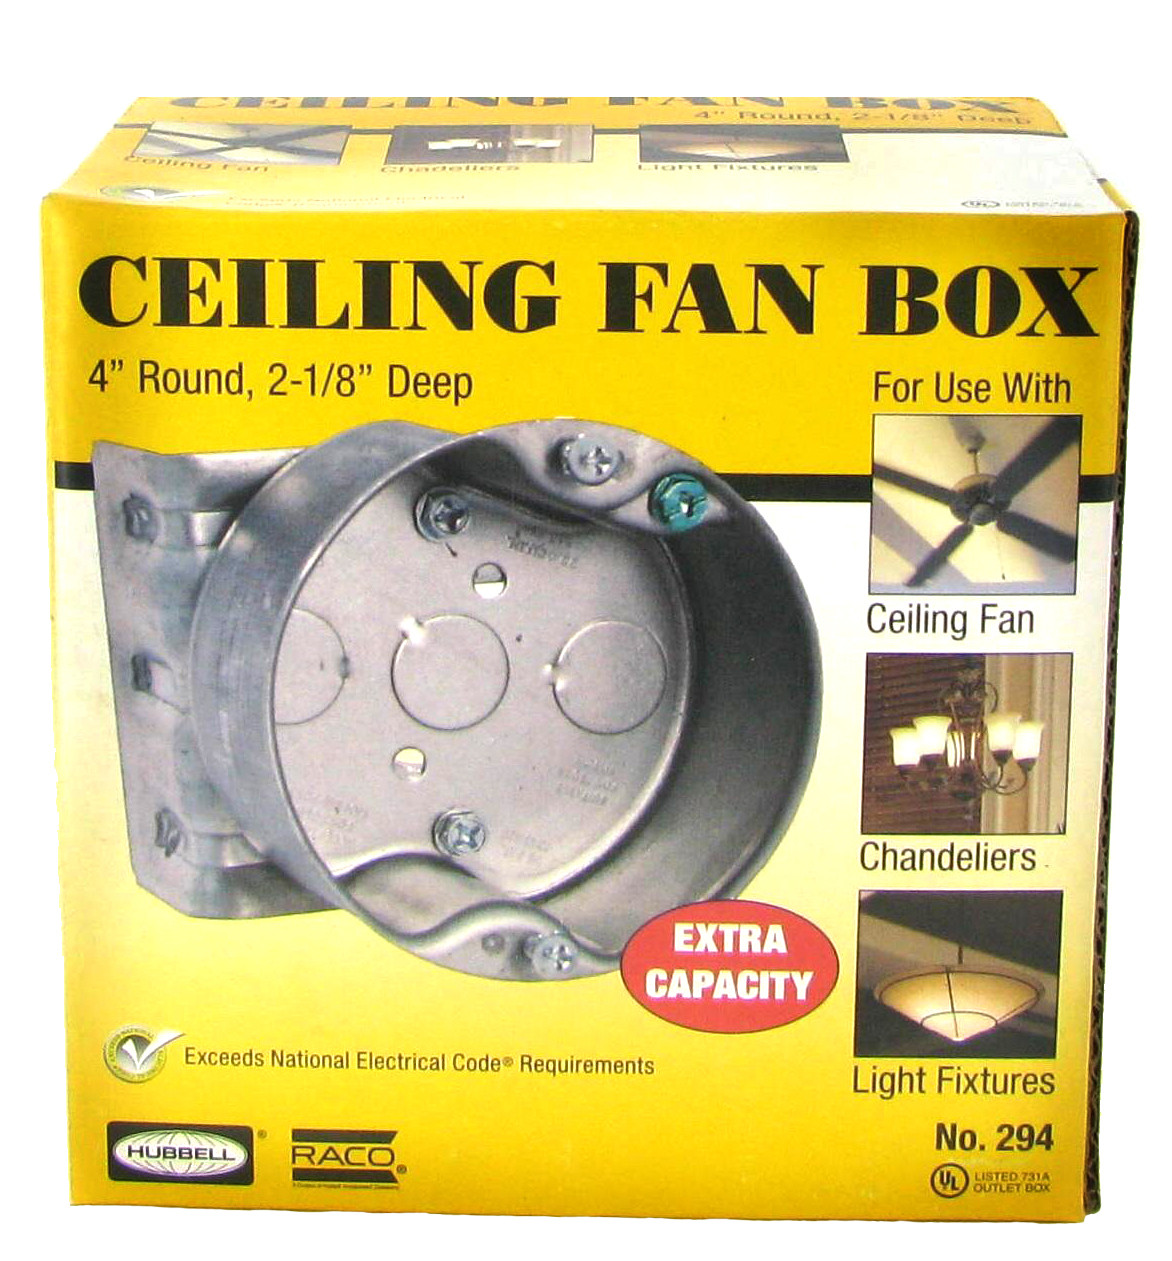 Raco 294 4 Inch Round Ceiling Fan Support Box 050169002940 2 Outlet Google Patents On Wiring A Light Switch Off Gfci 1